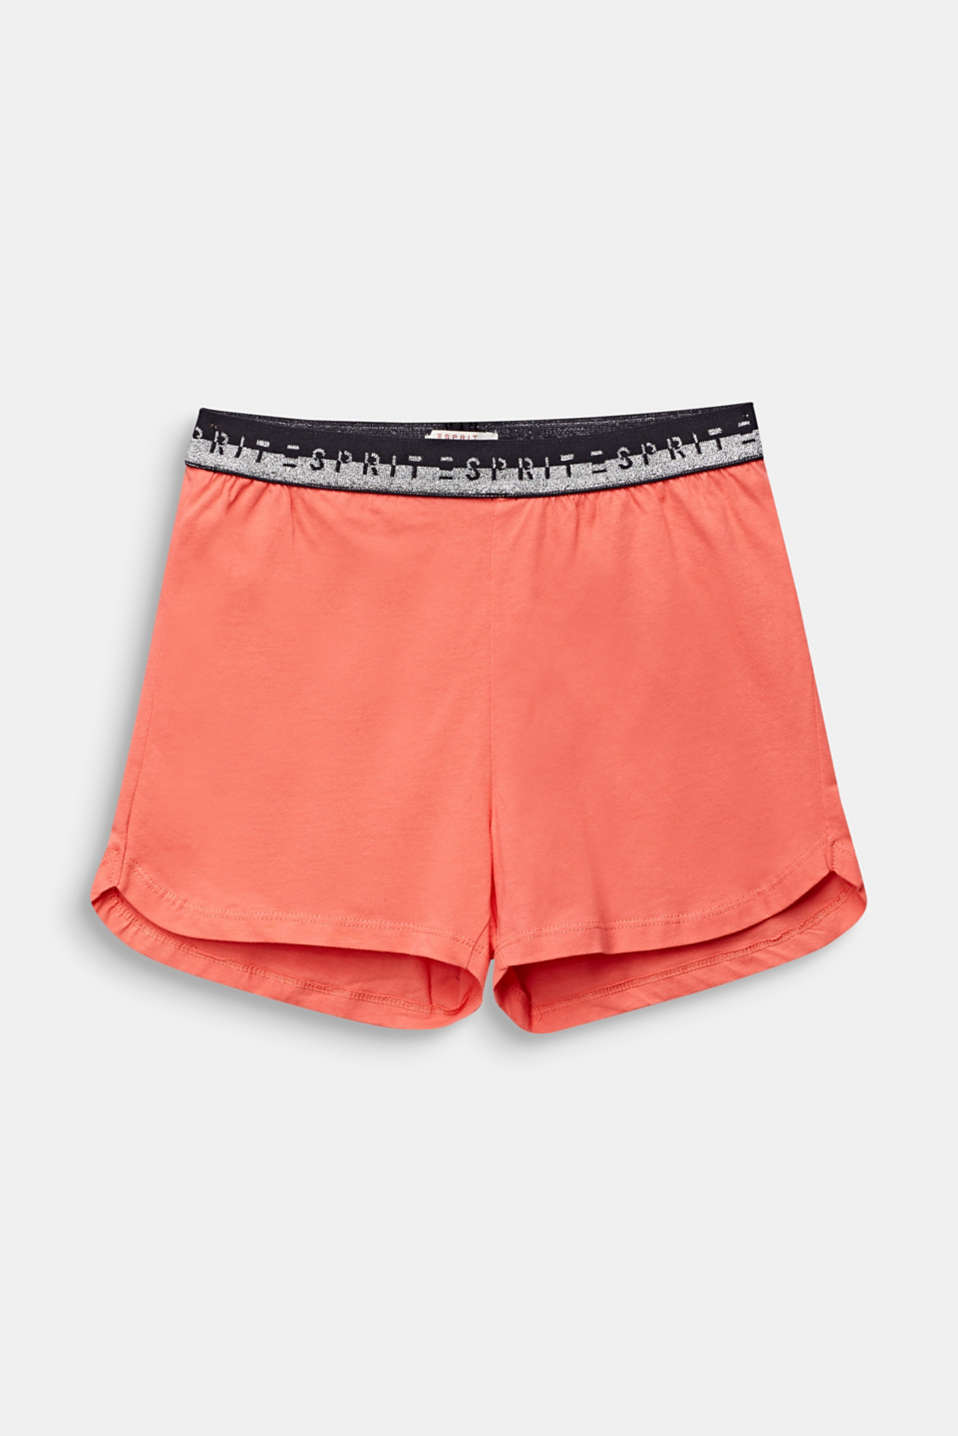 Jersey shorts with a logo waistband, 100% cotton, LCCORAL, detail image number 0